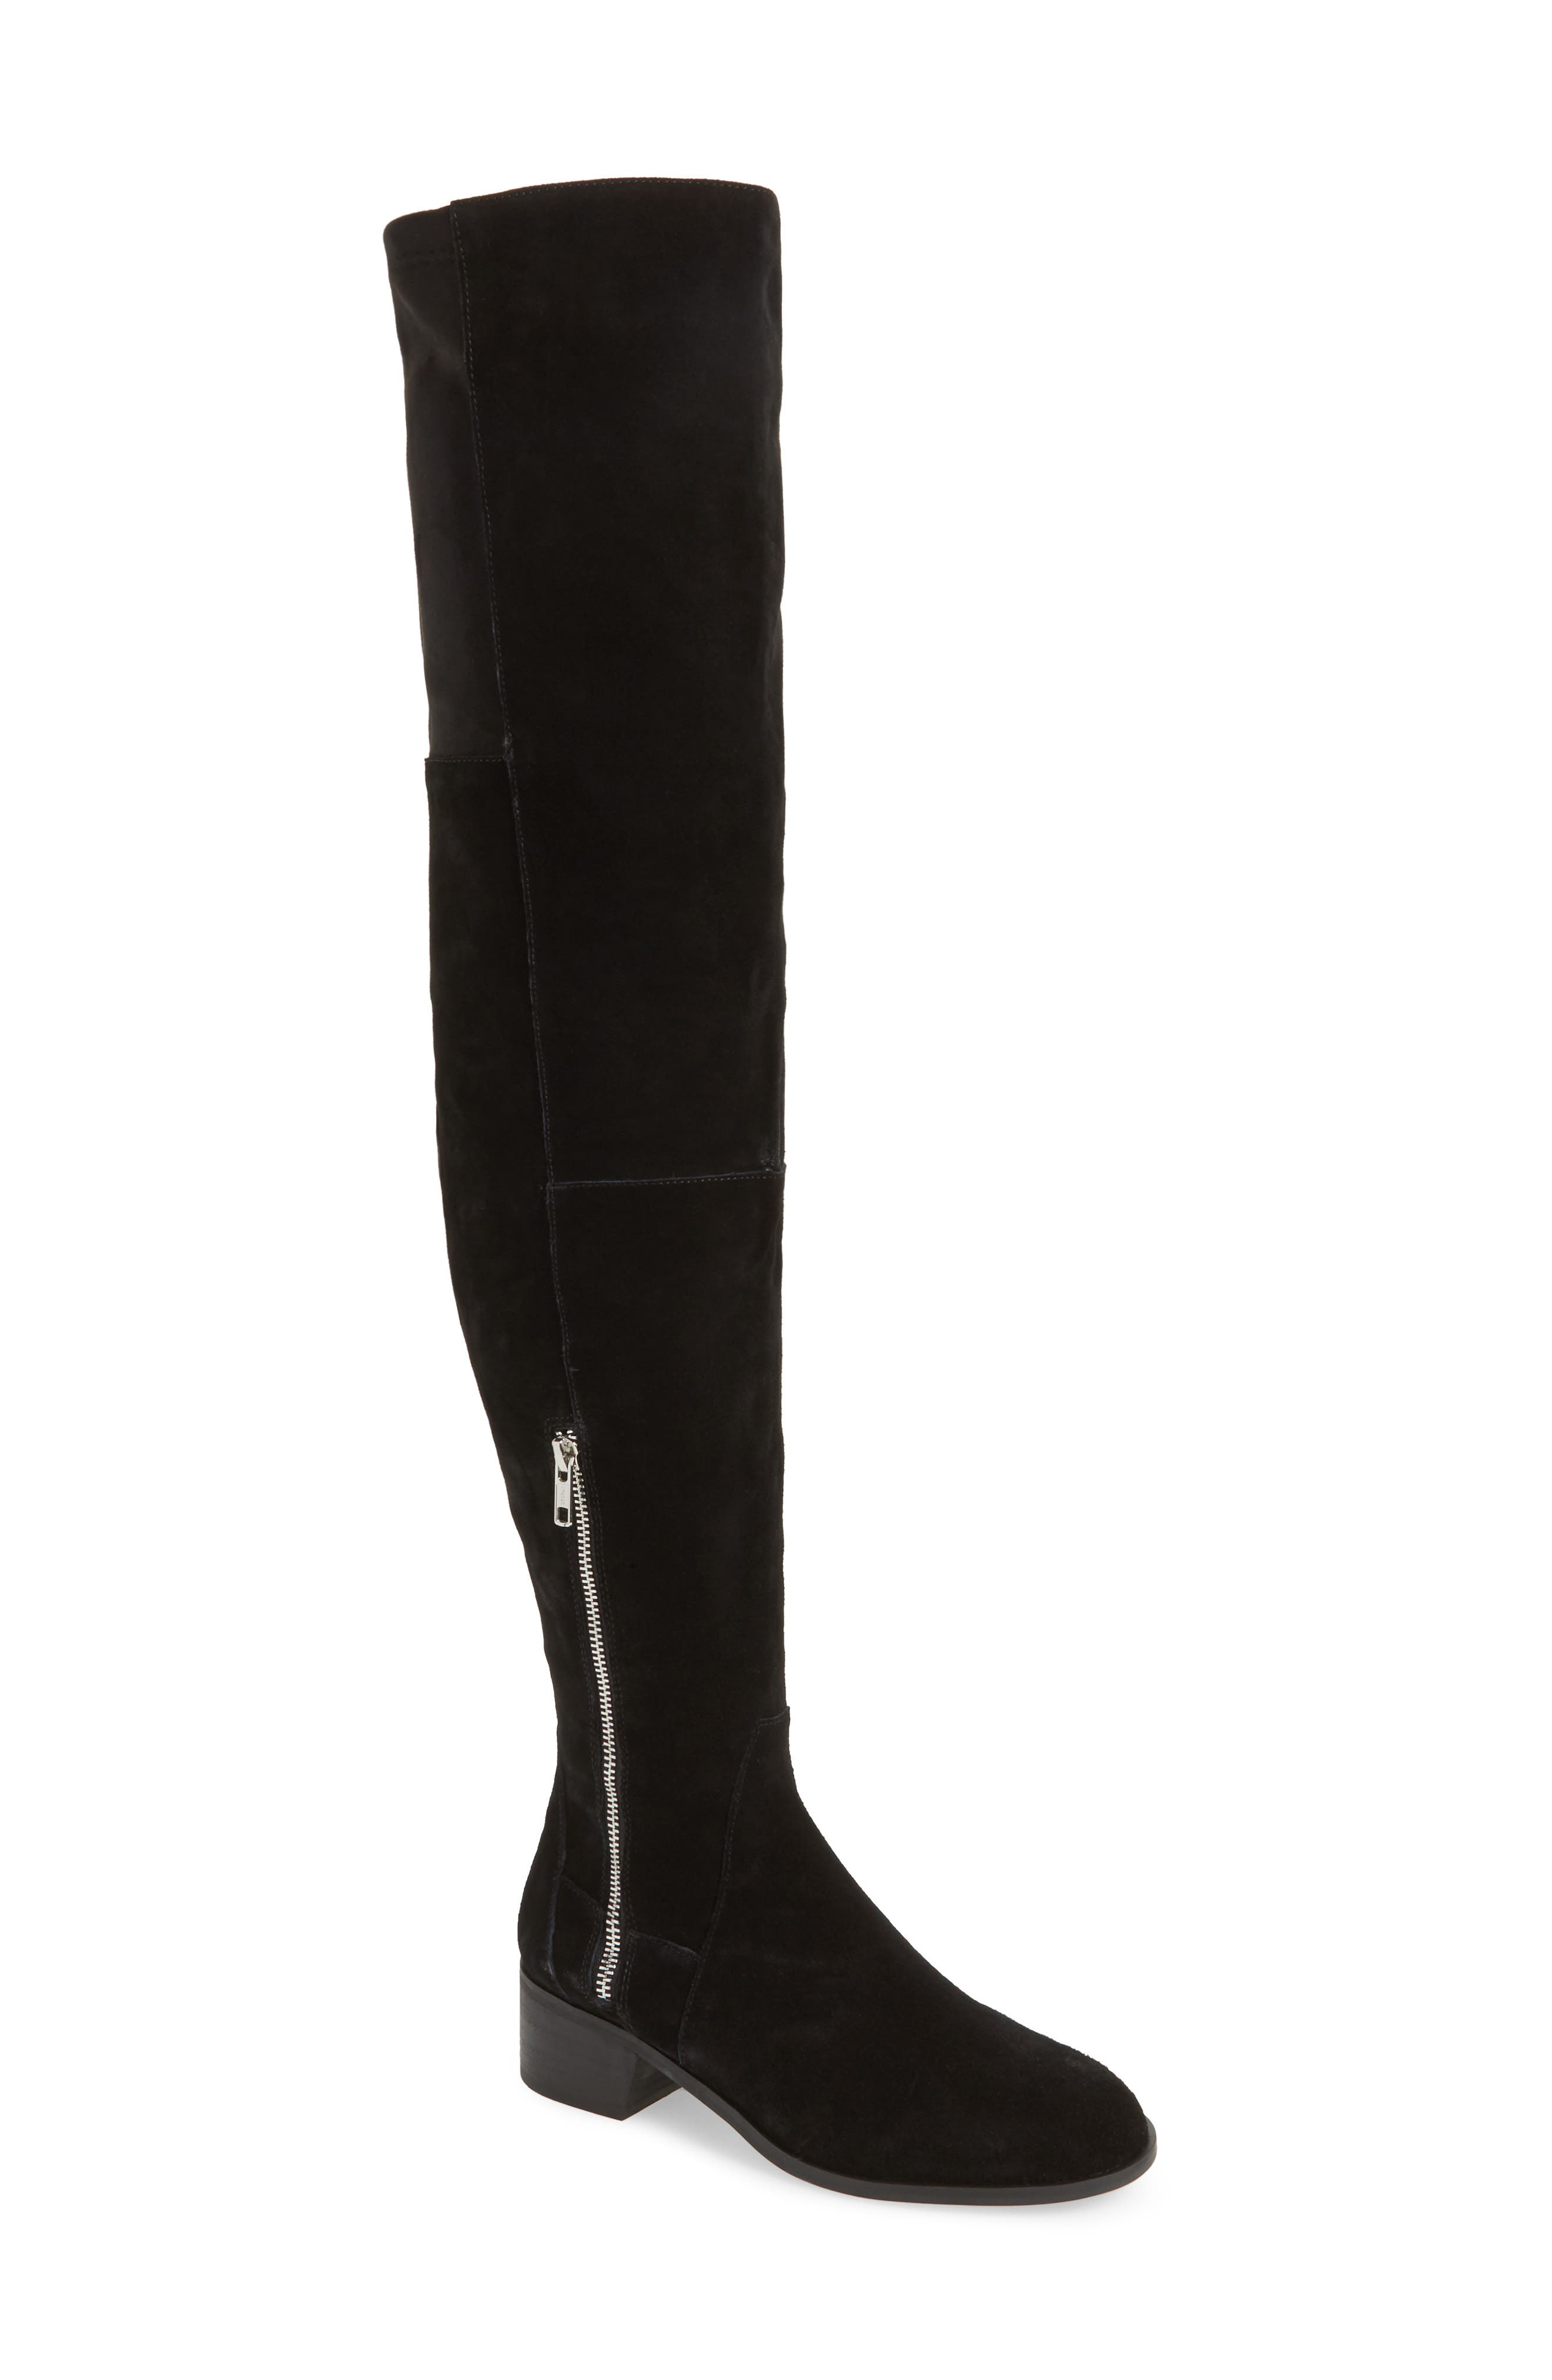 Everly Thigh High Boot,                         Main,                         color, 001